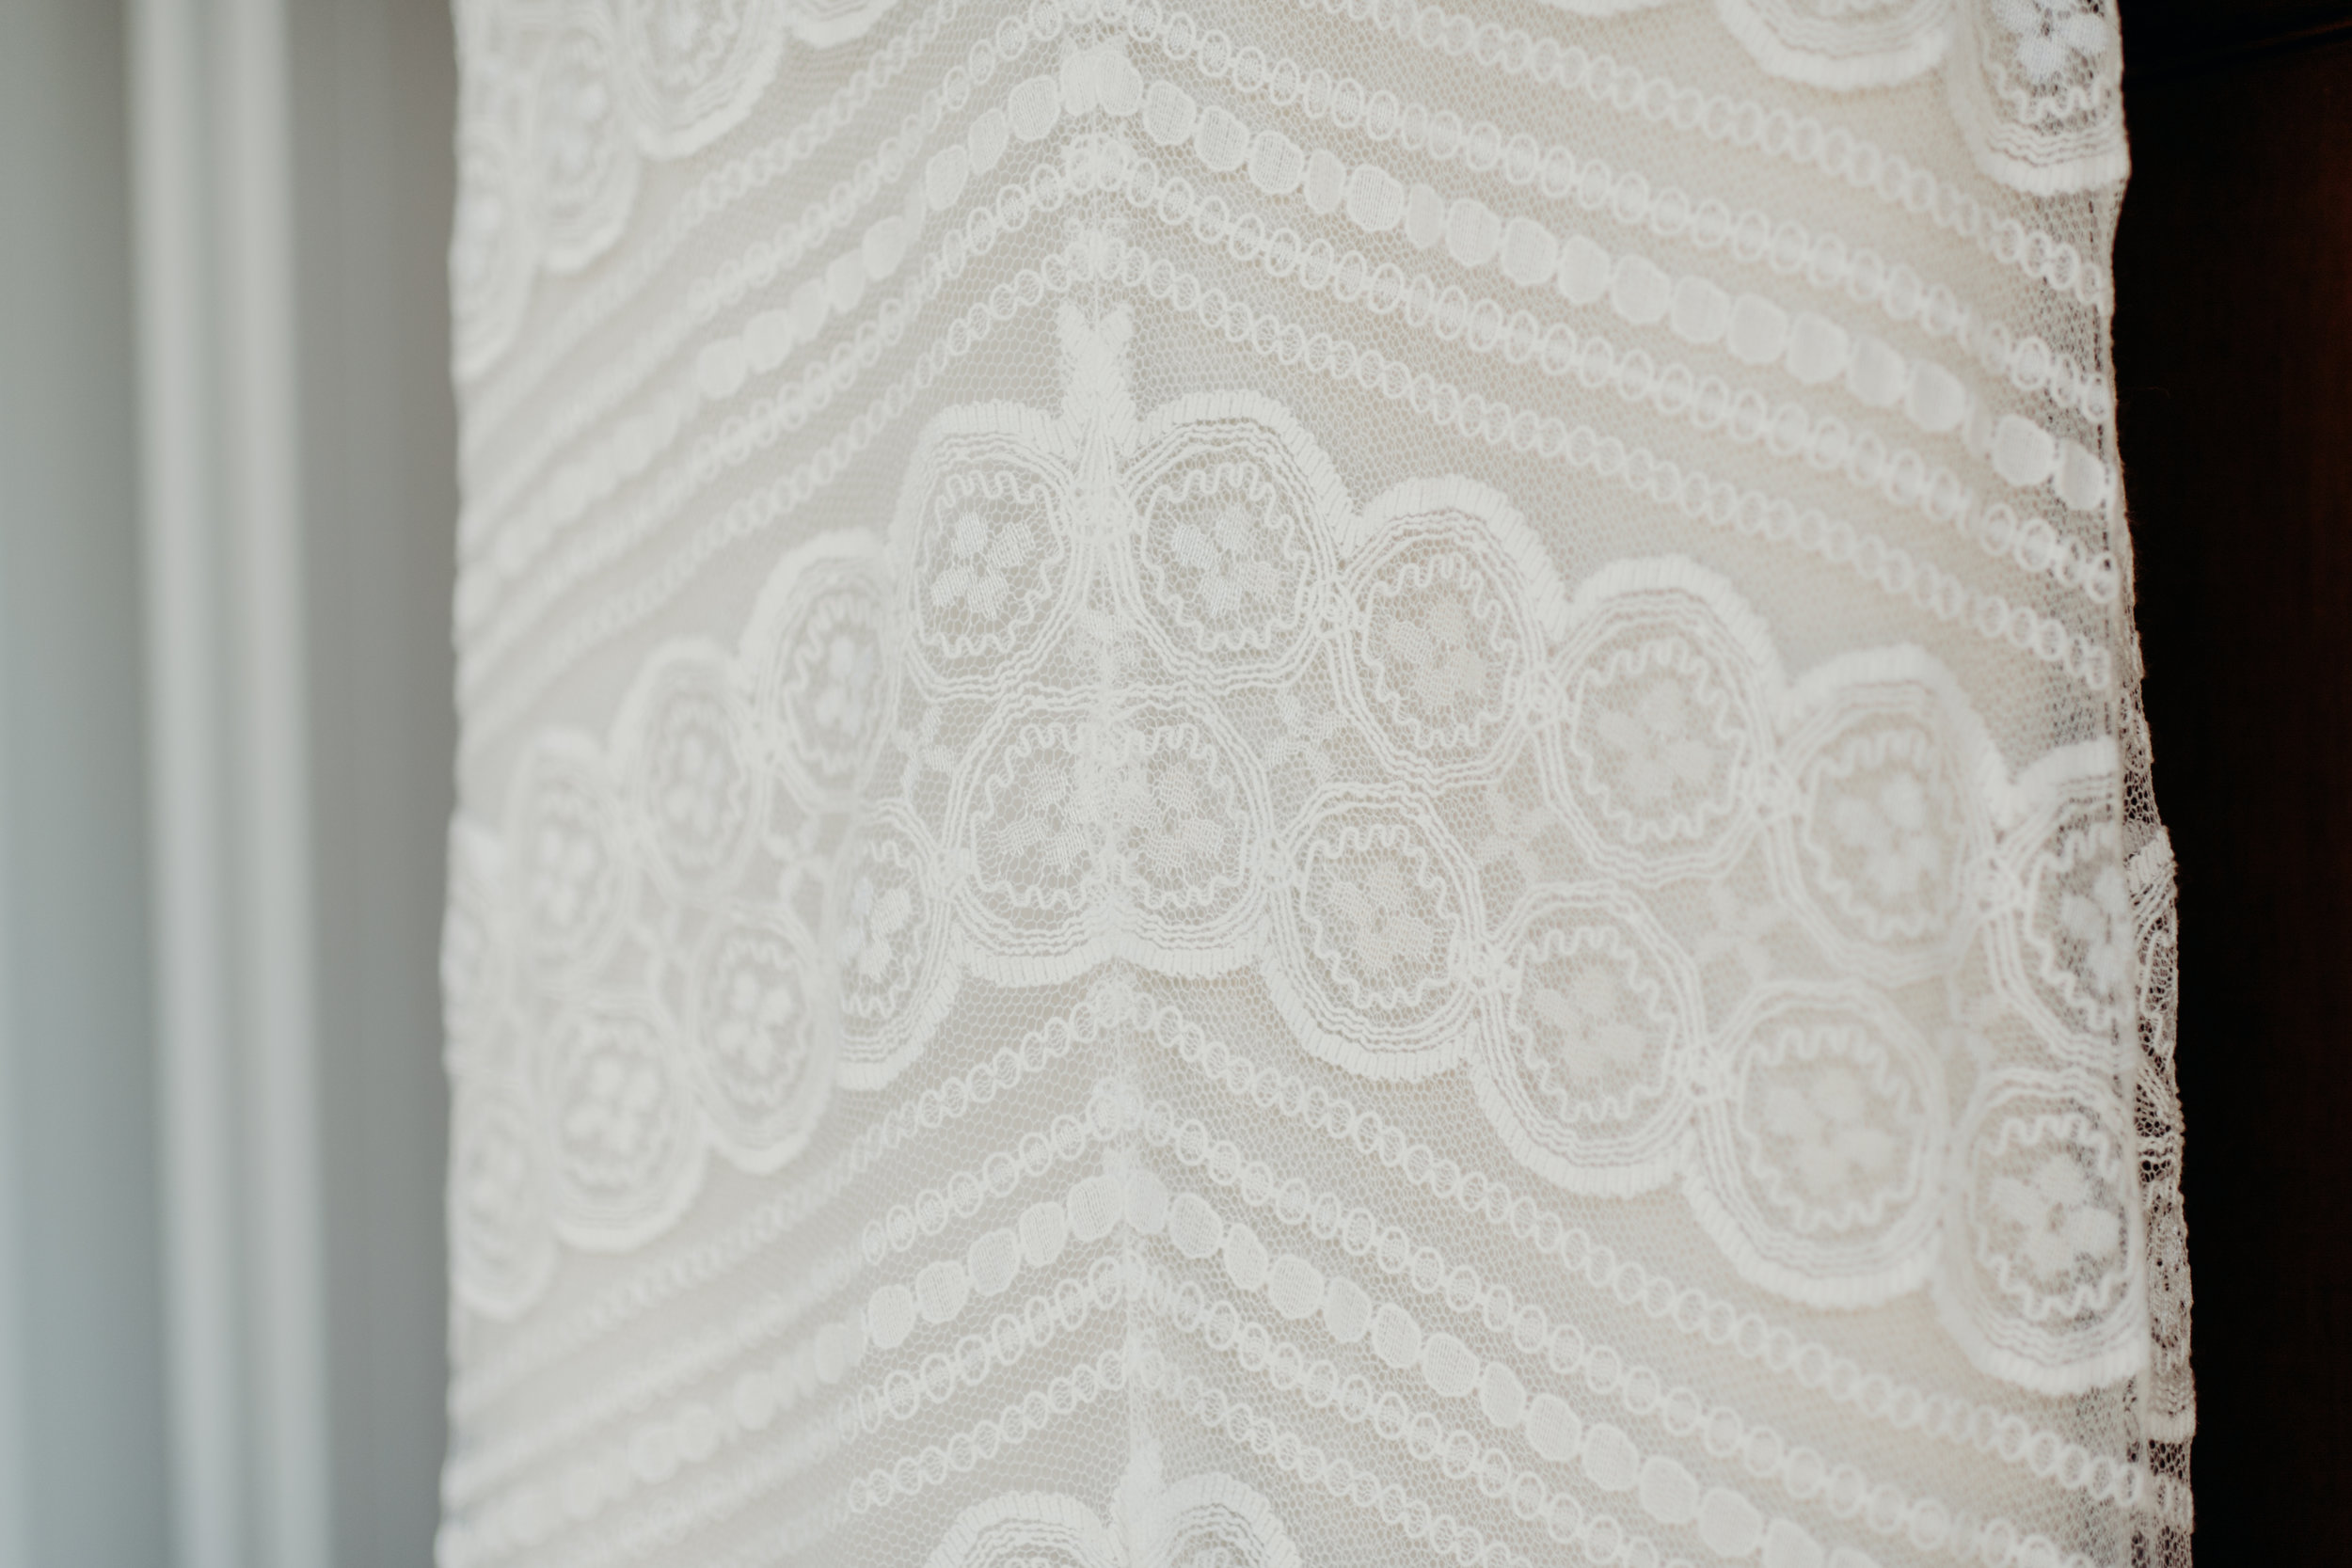 Lace detail of wedding dress.